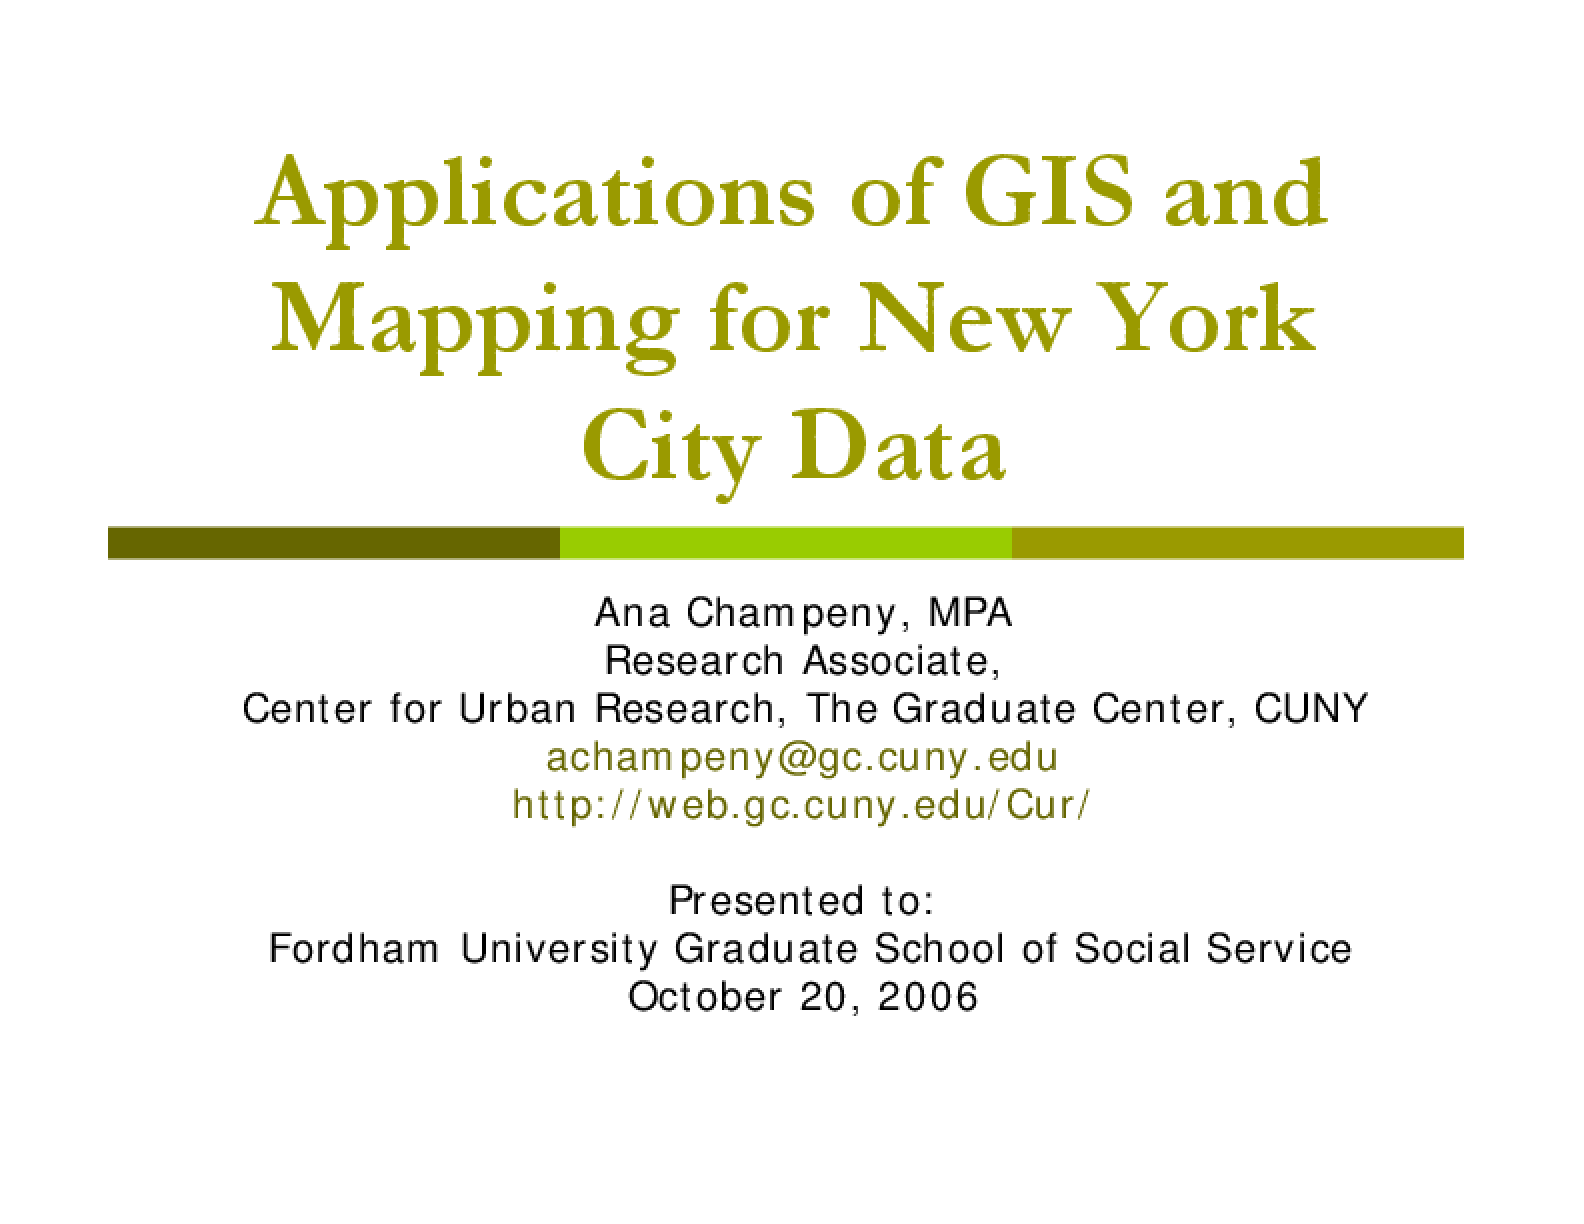 Applications of GIS and Mapping for New York City Data